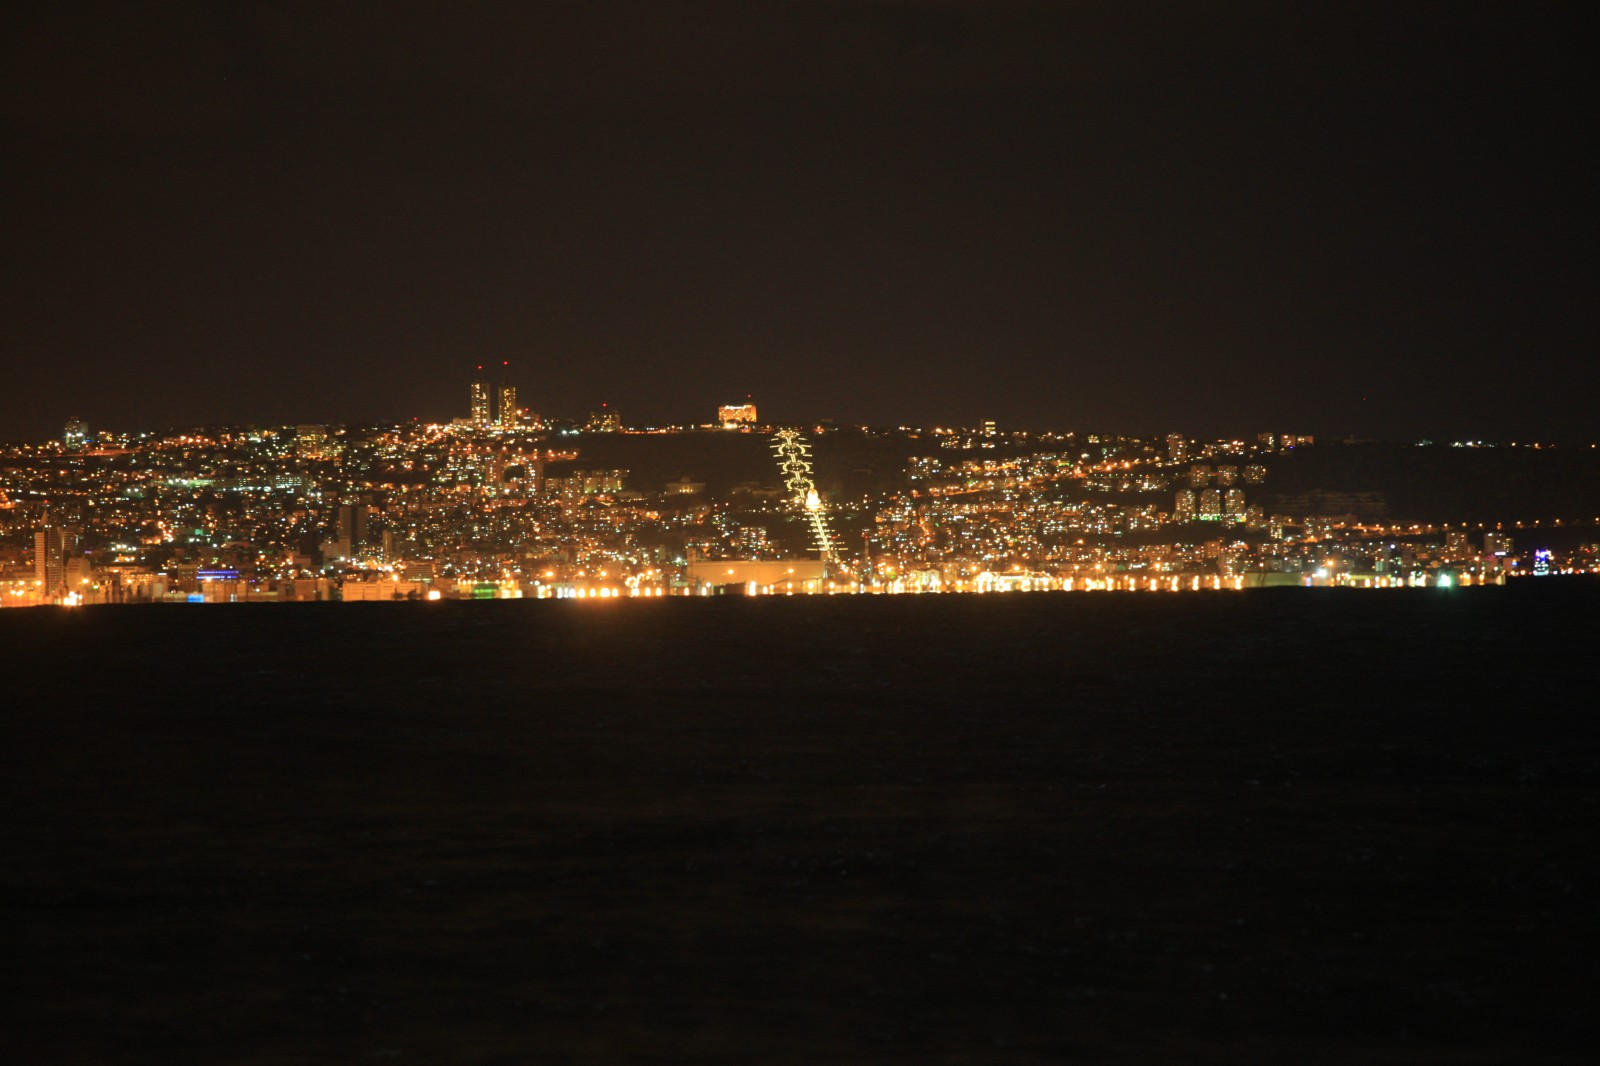 Haifa from across the bay, Bahai gardens in the center